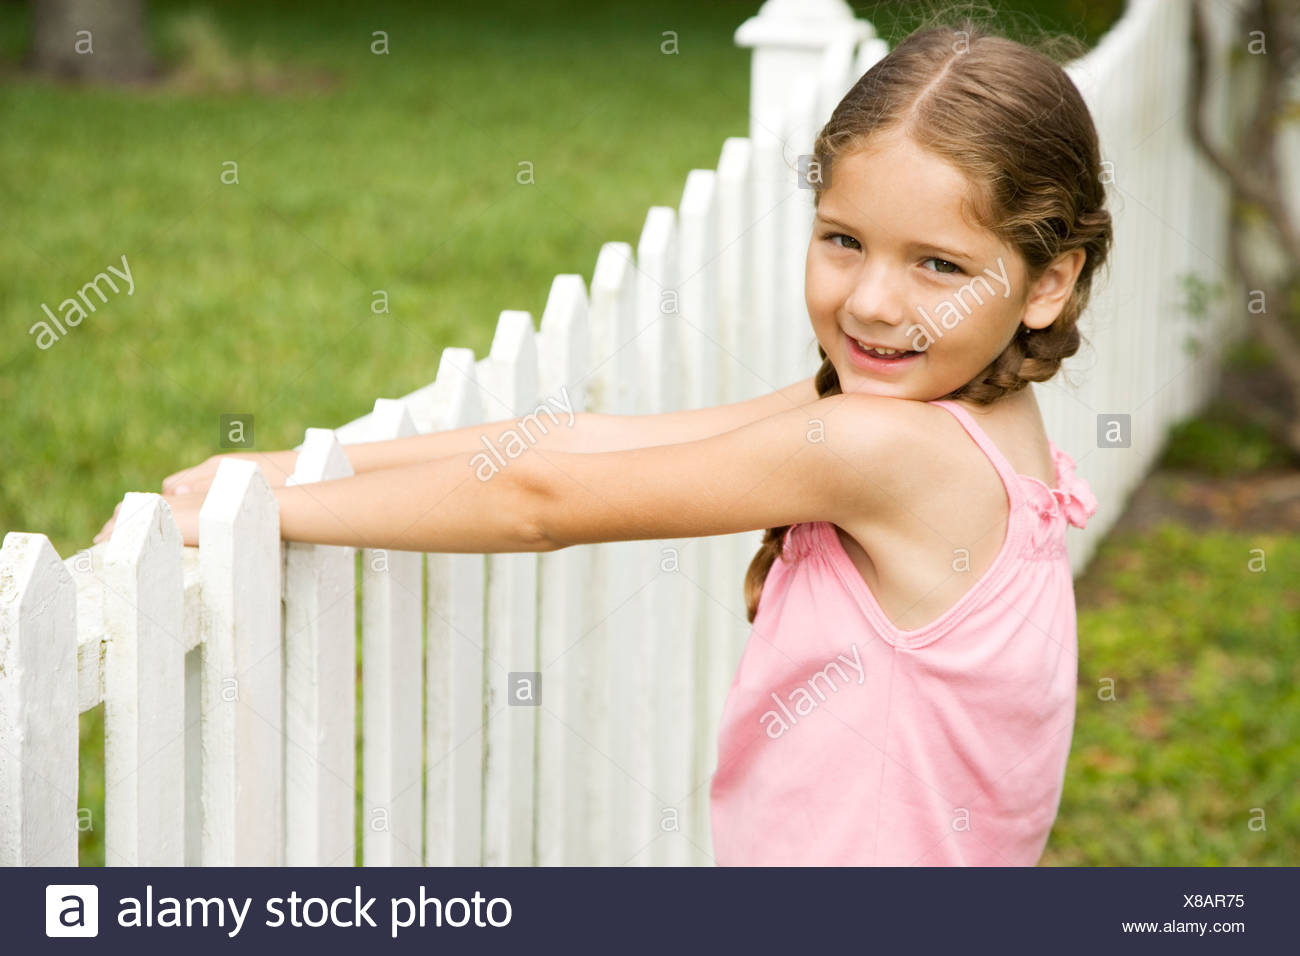 little girl standing by picket fence - Stock Image